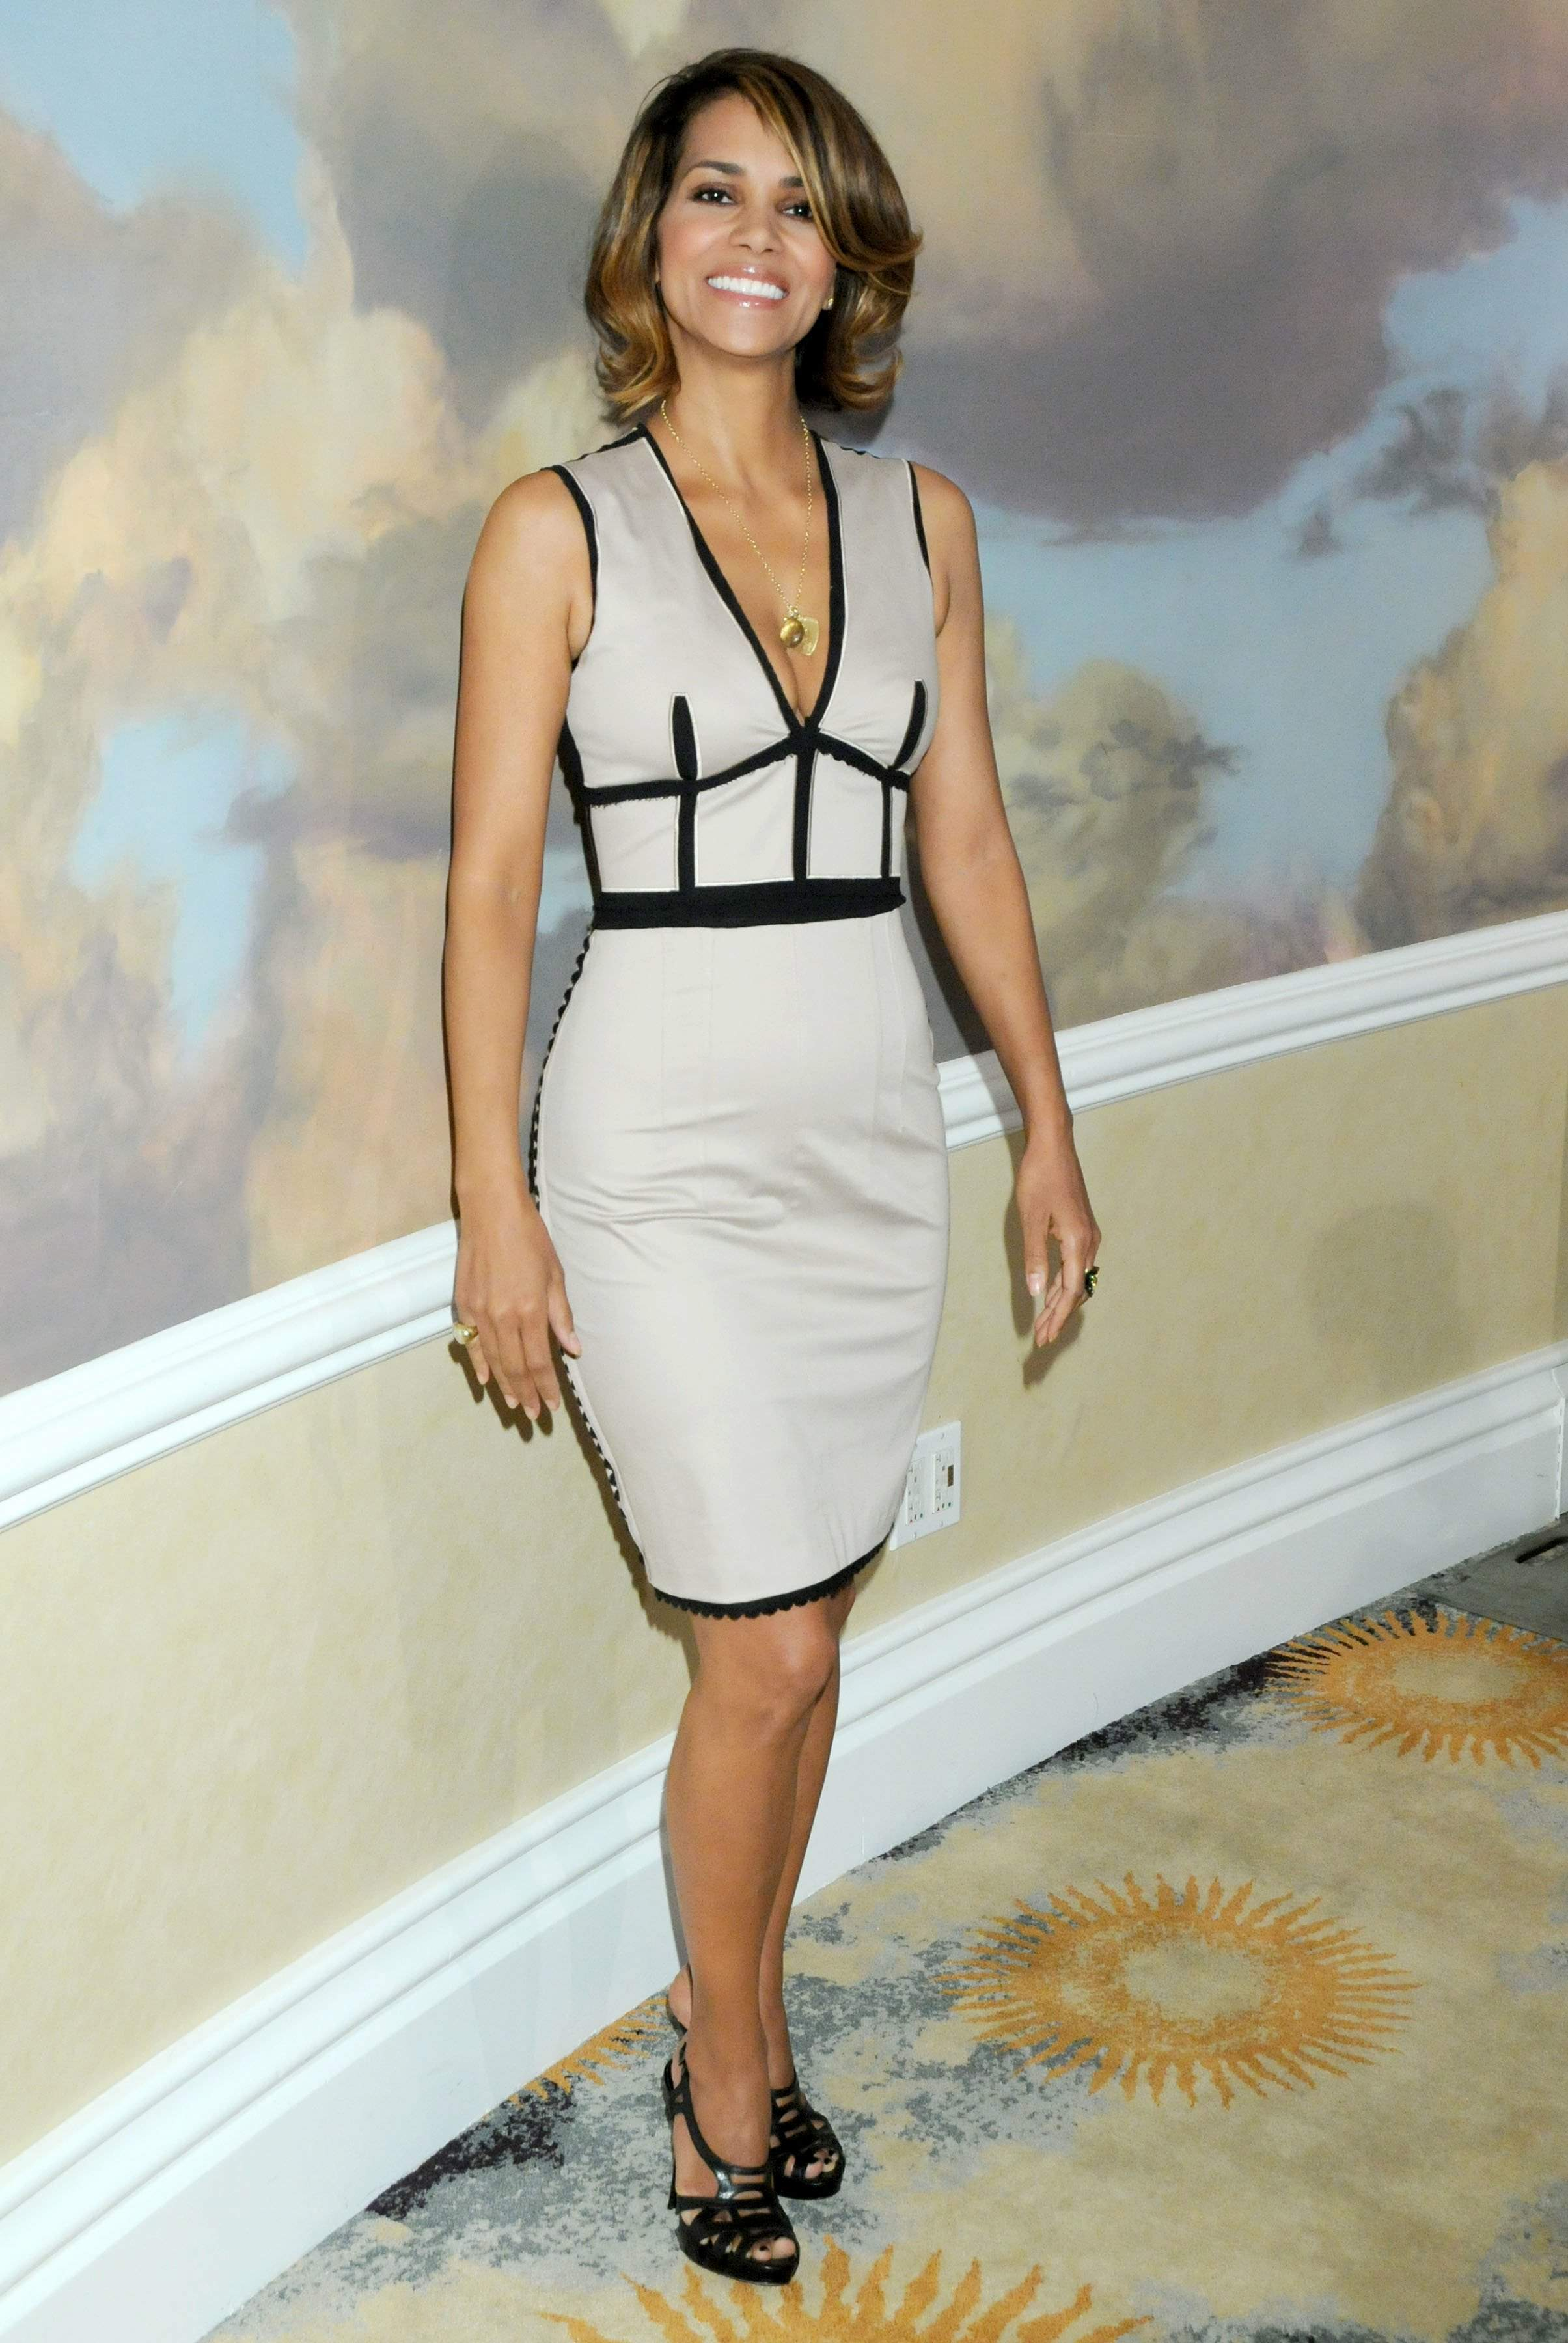 62518_Halle_Berry_2009_Jenesse_Silver_Rose_Gala_Auction_in_Beverly_Hills_20_122_166lo.jpg